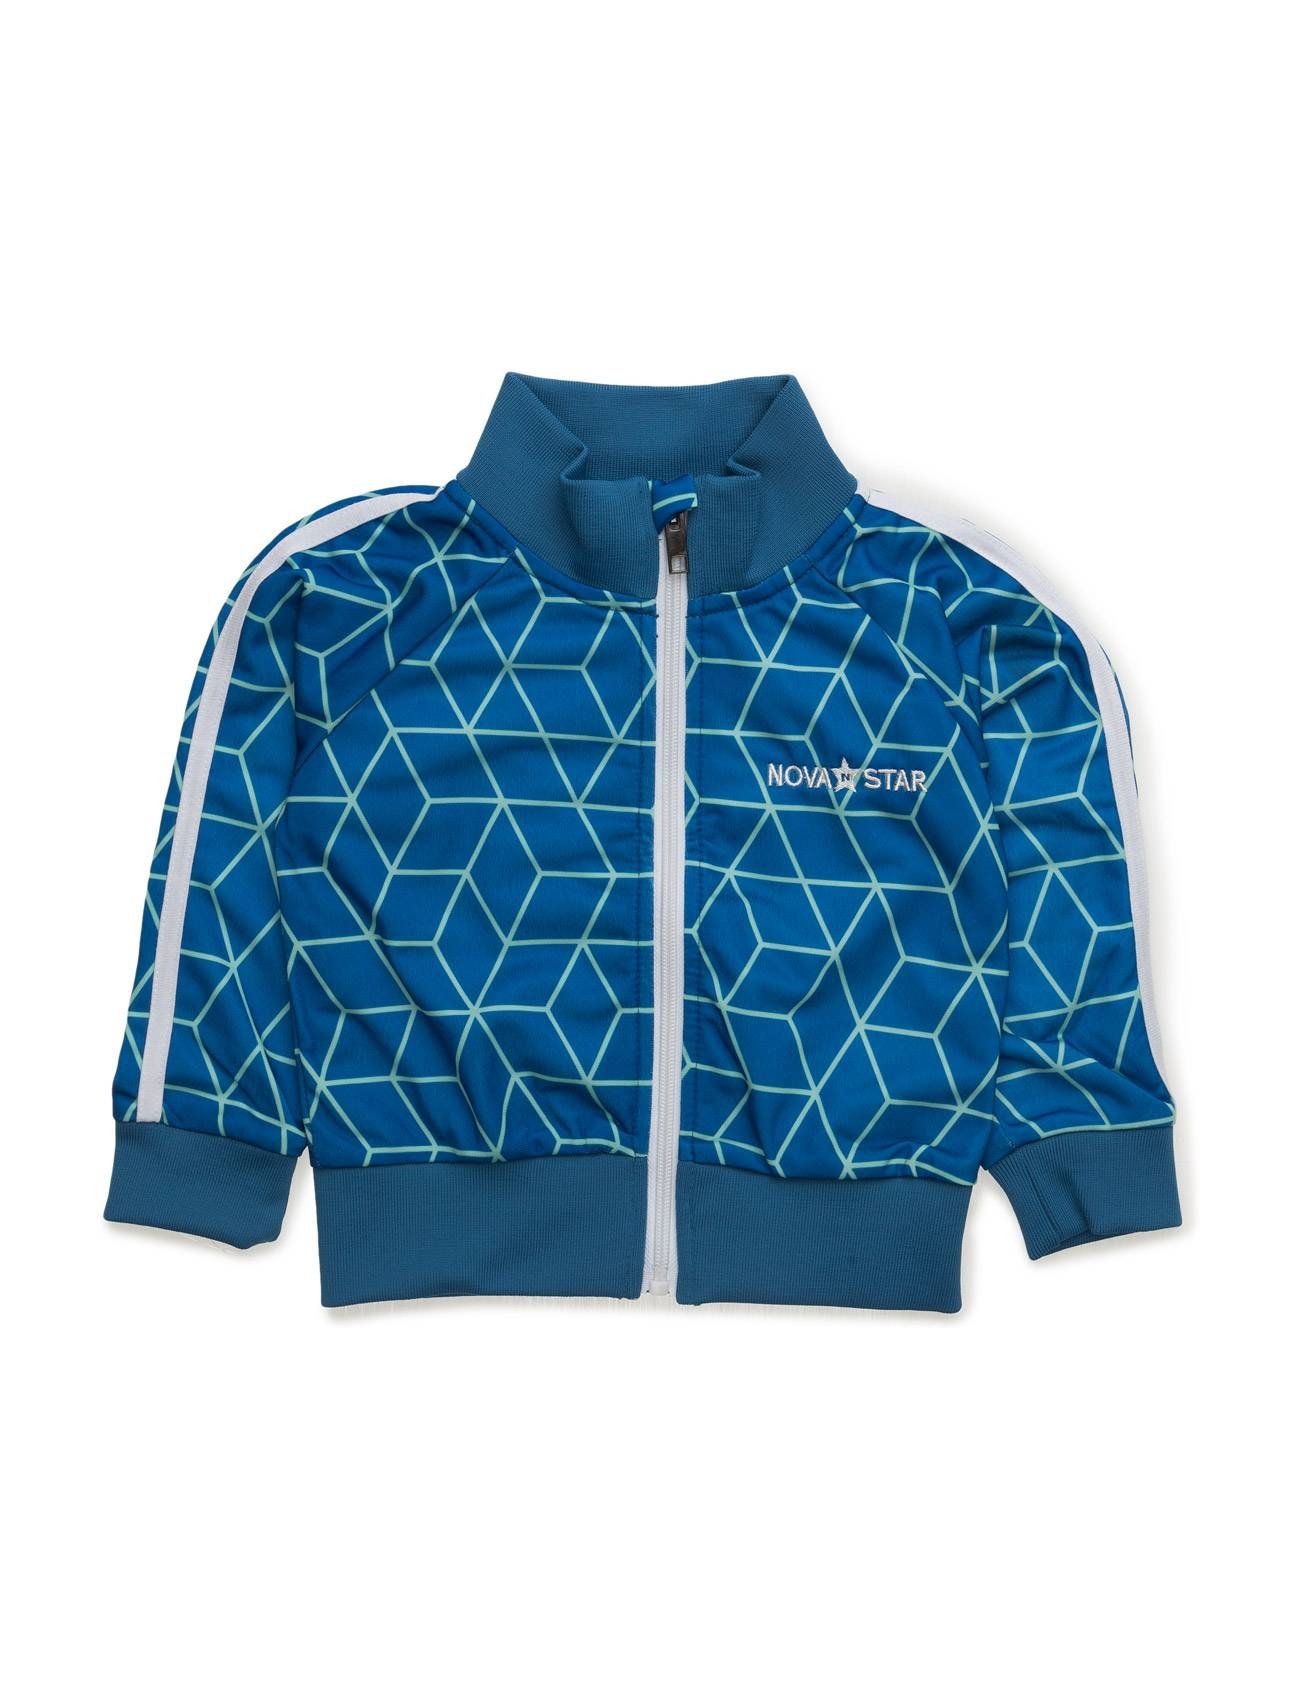 NOVA STAR Track Jacket Square